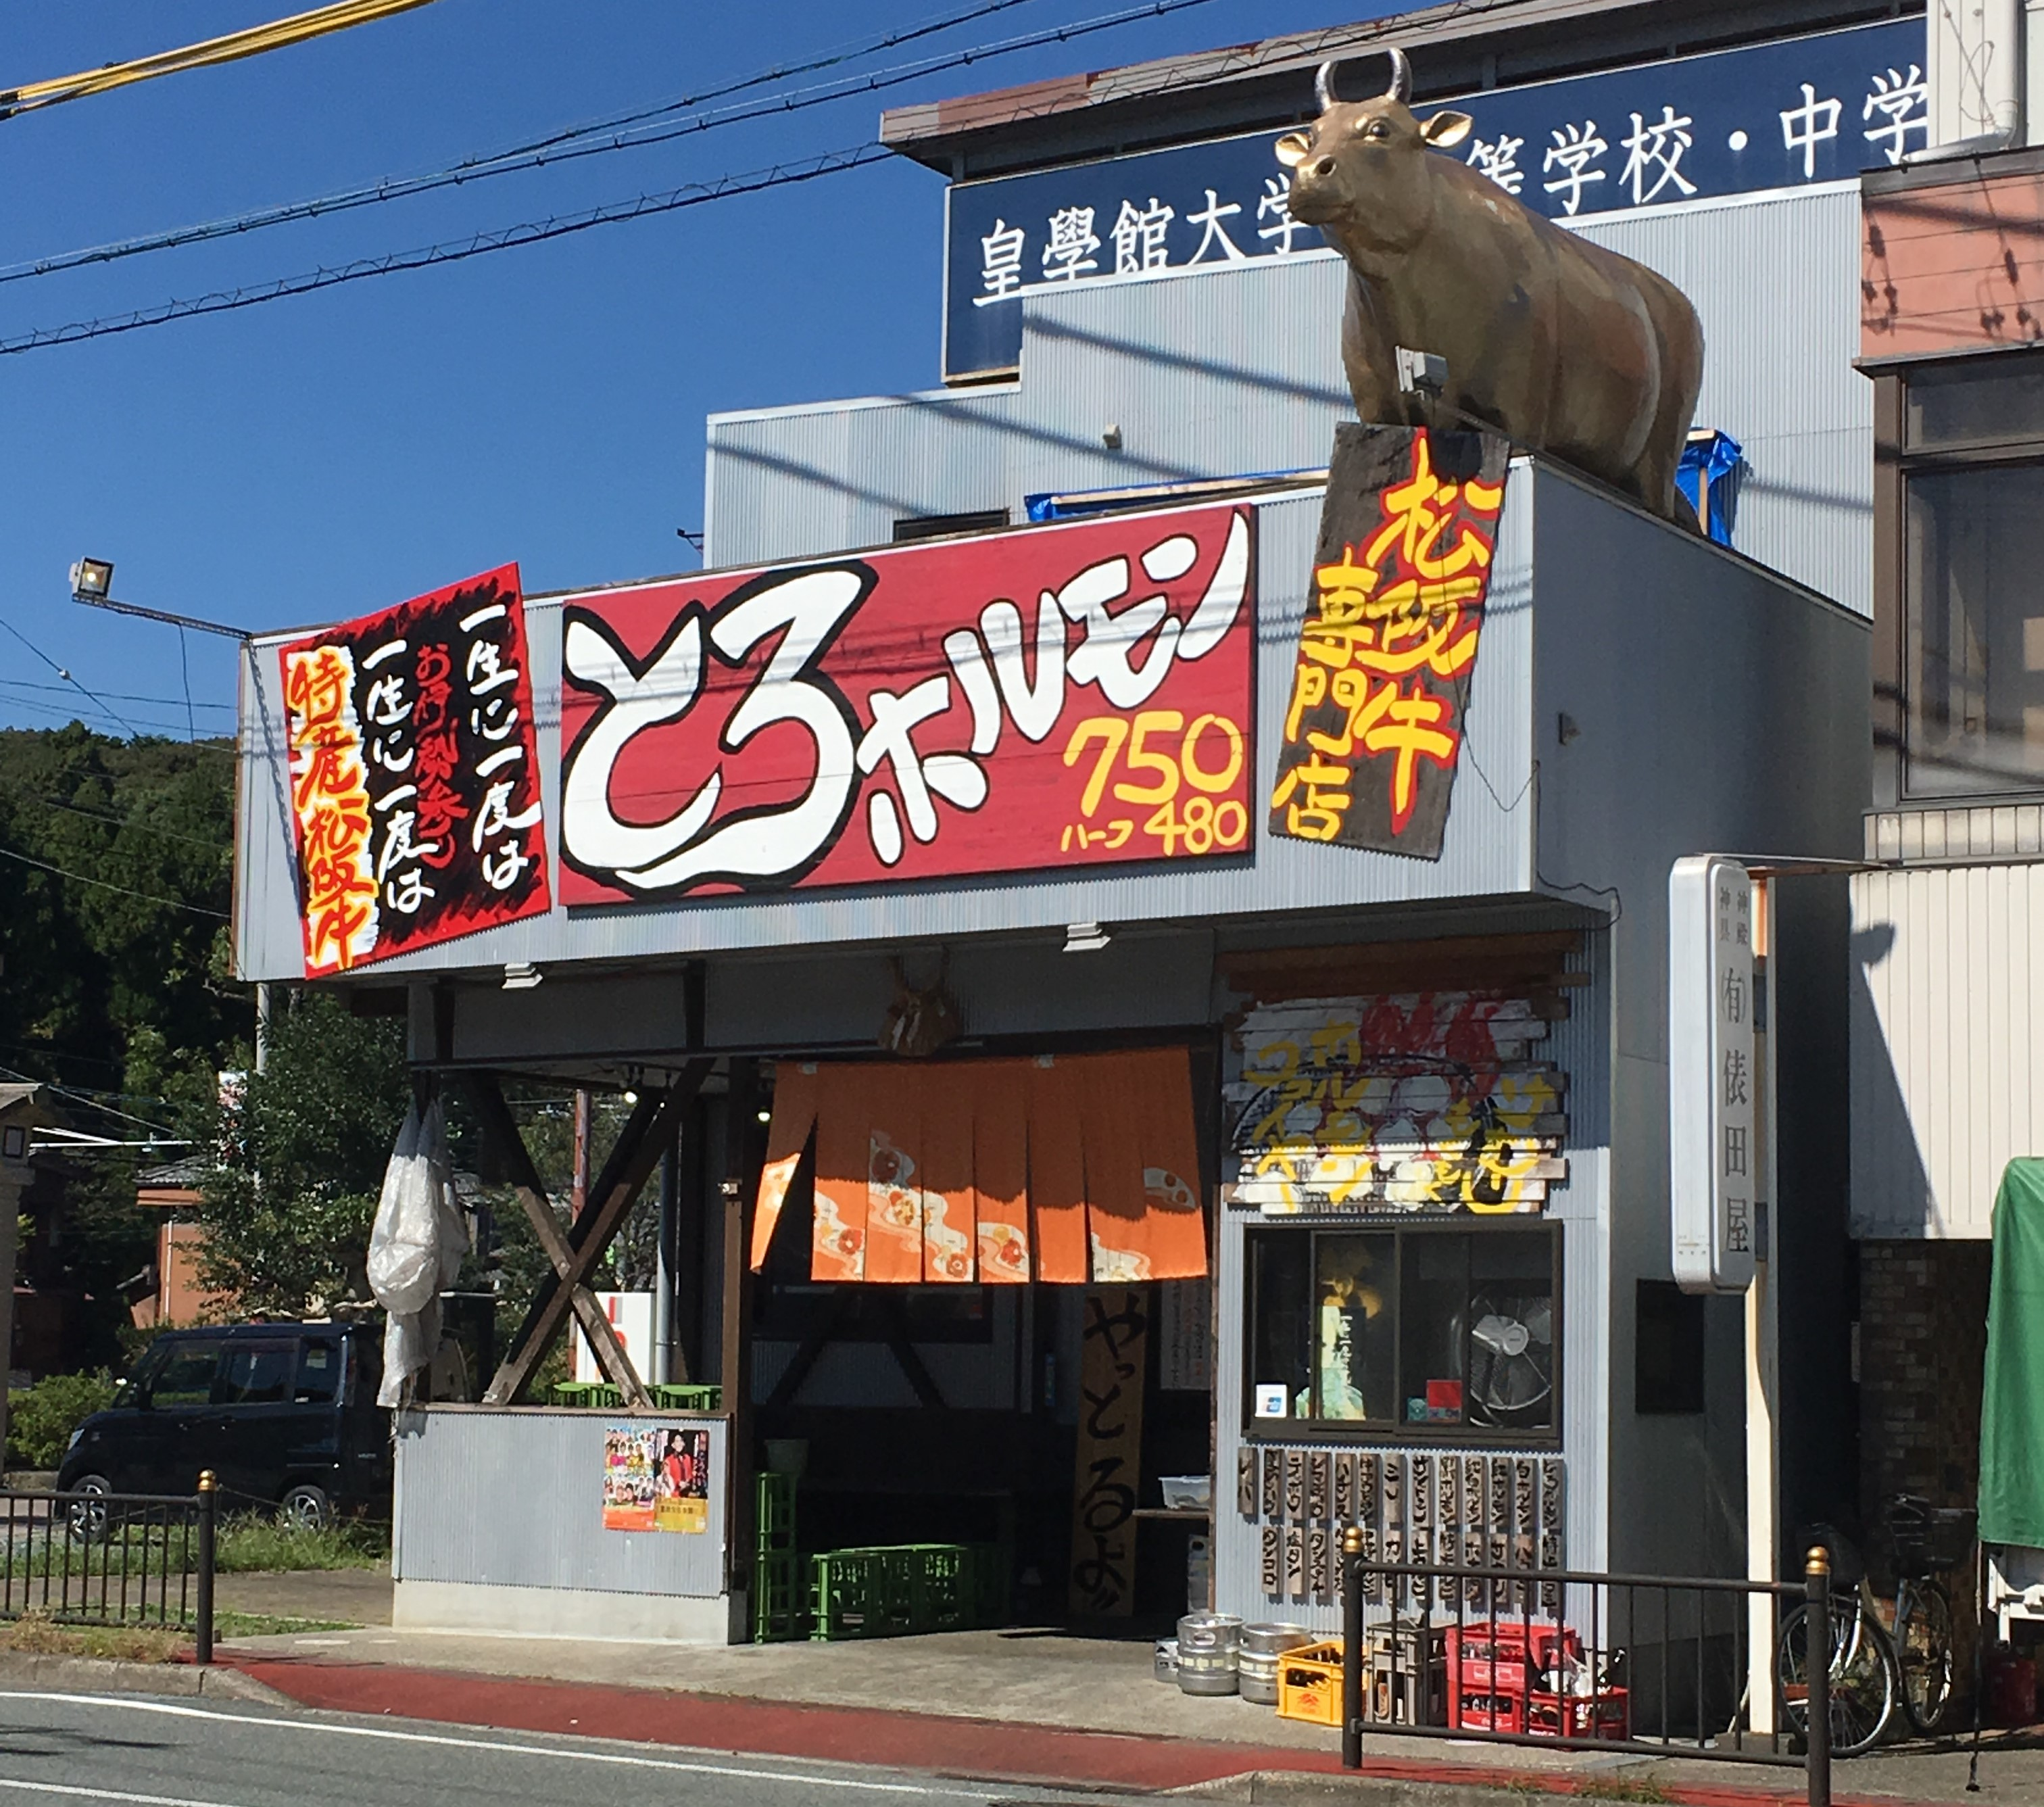 Japanese beef restaurant with golden cow on the roof